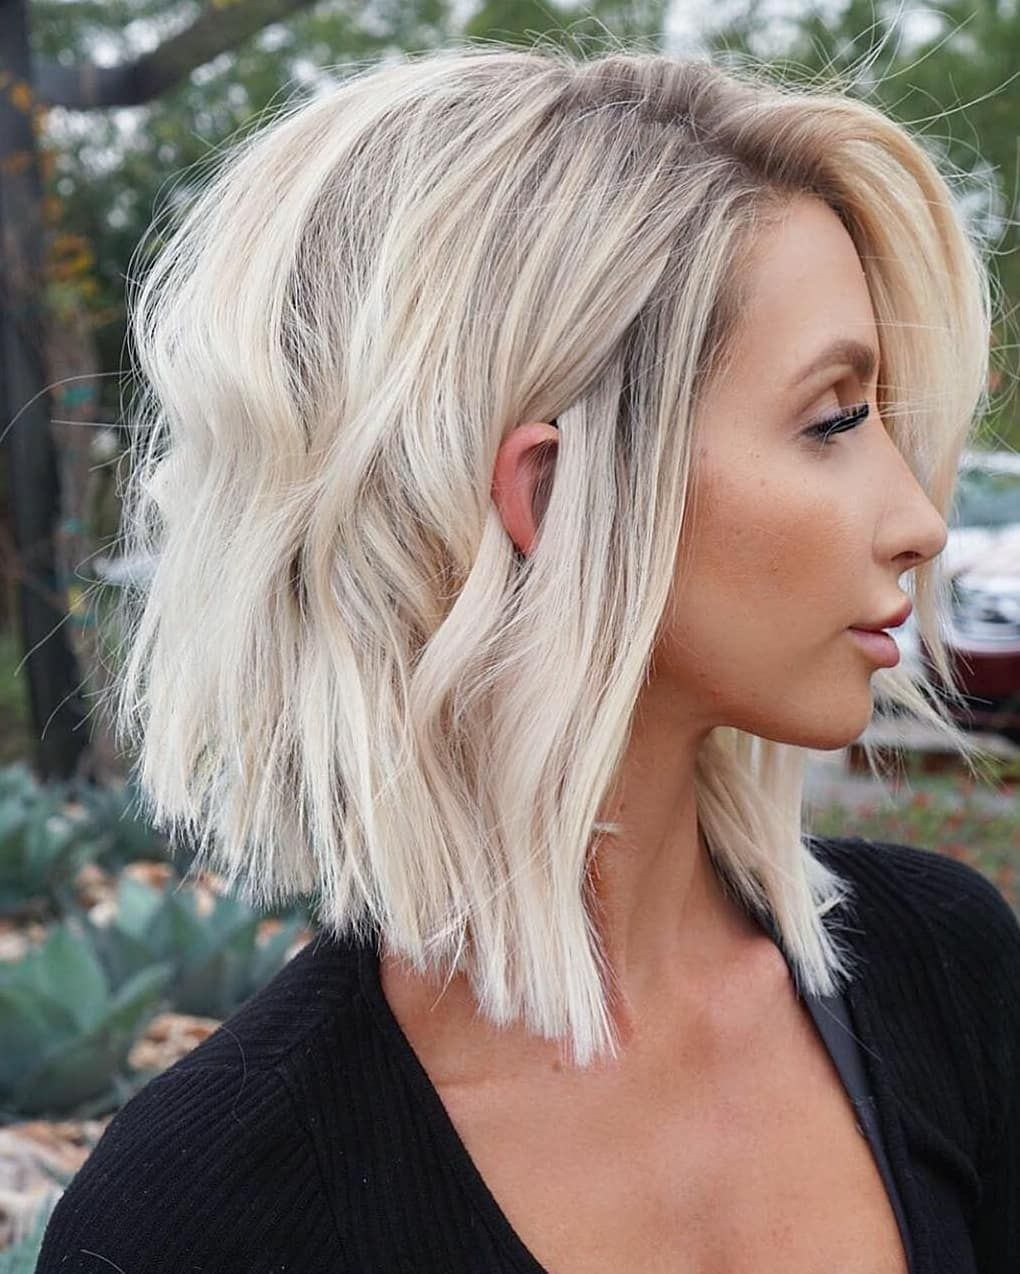 Best Short ﹠ Mediumlength Hair Color And Style Ideas For Spring in 2020 | Lob haircut, Inverted ...